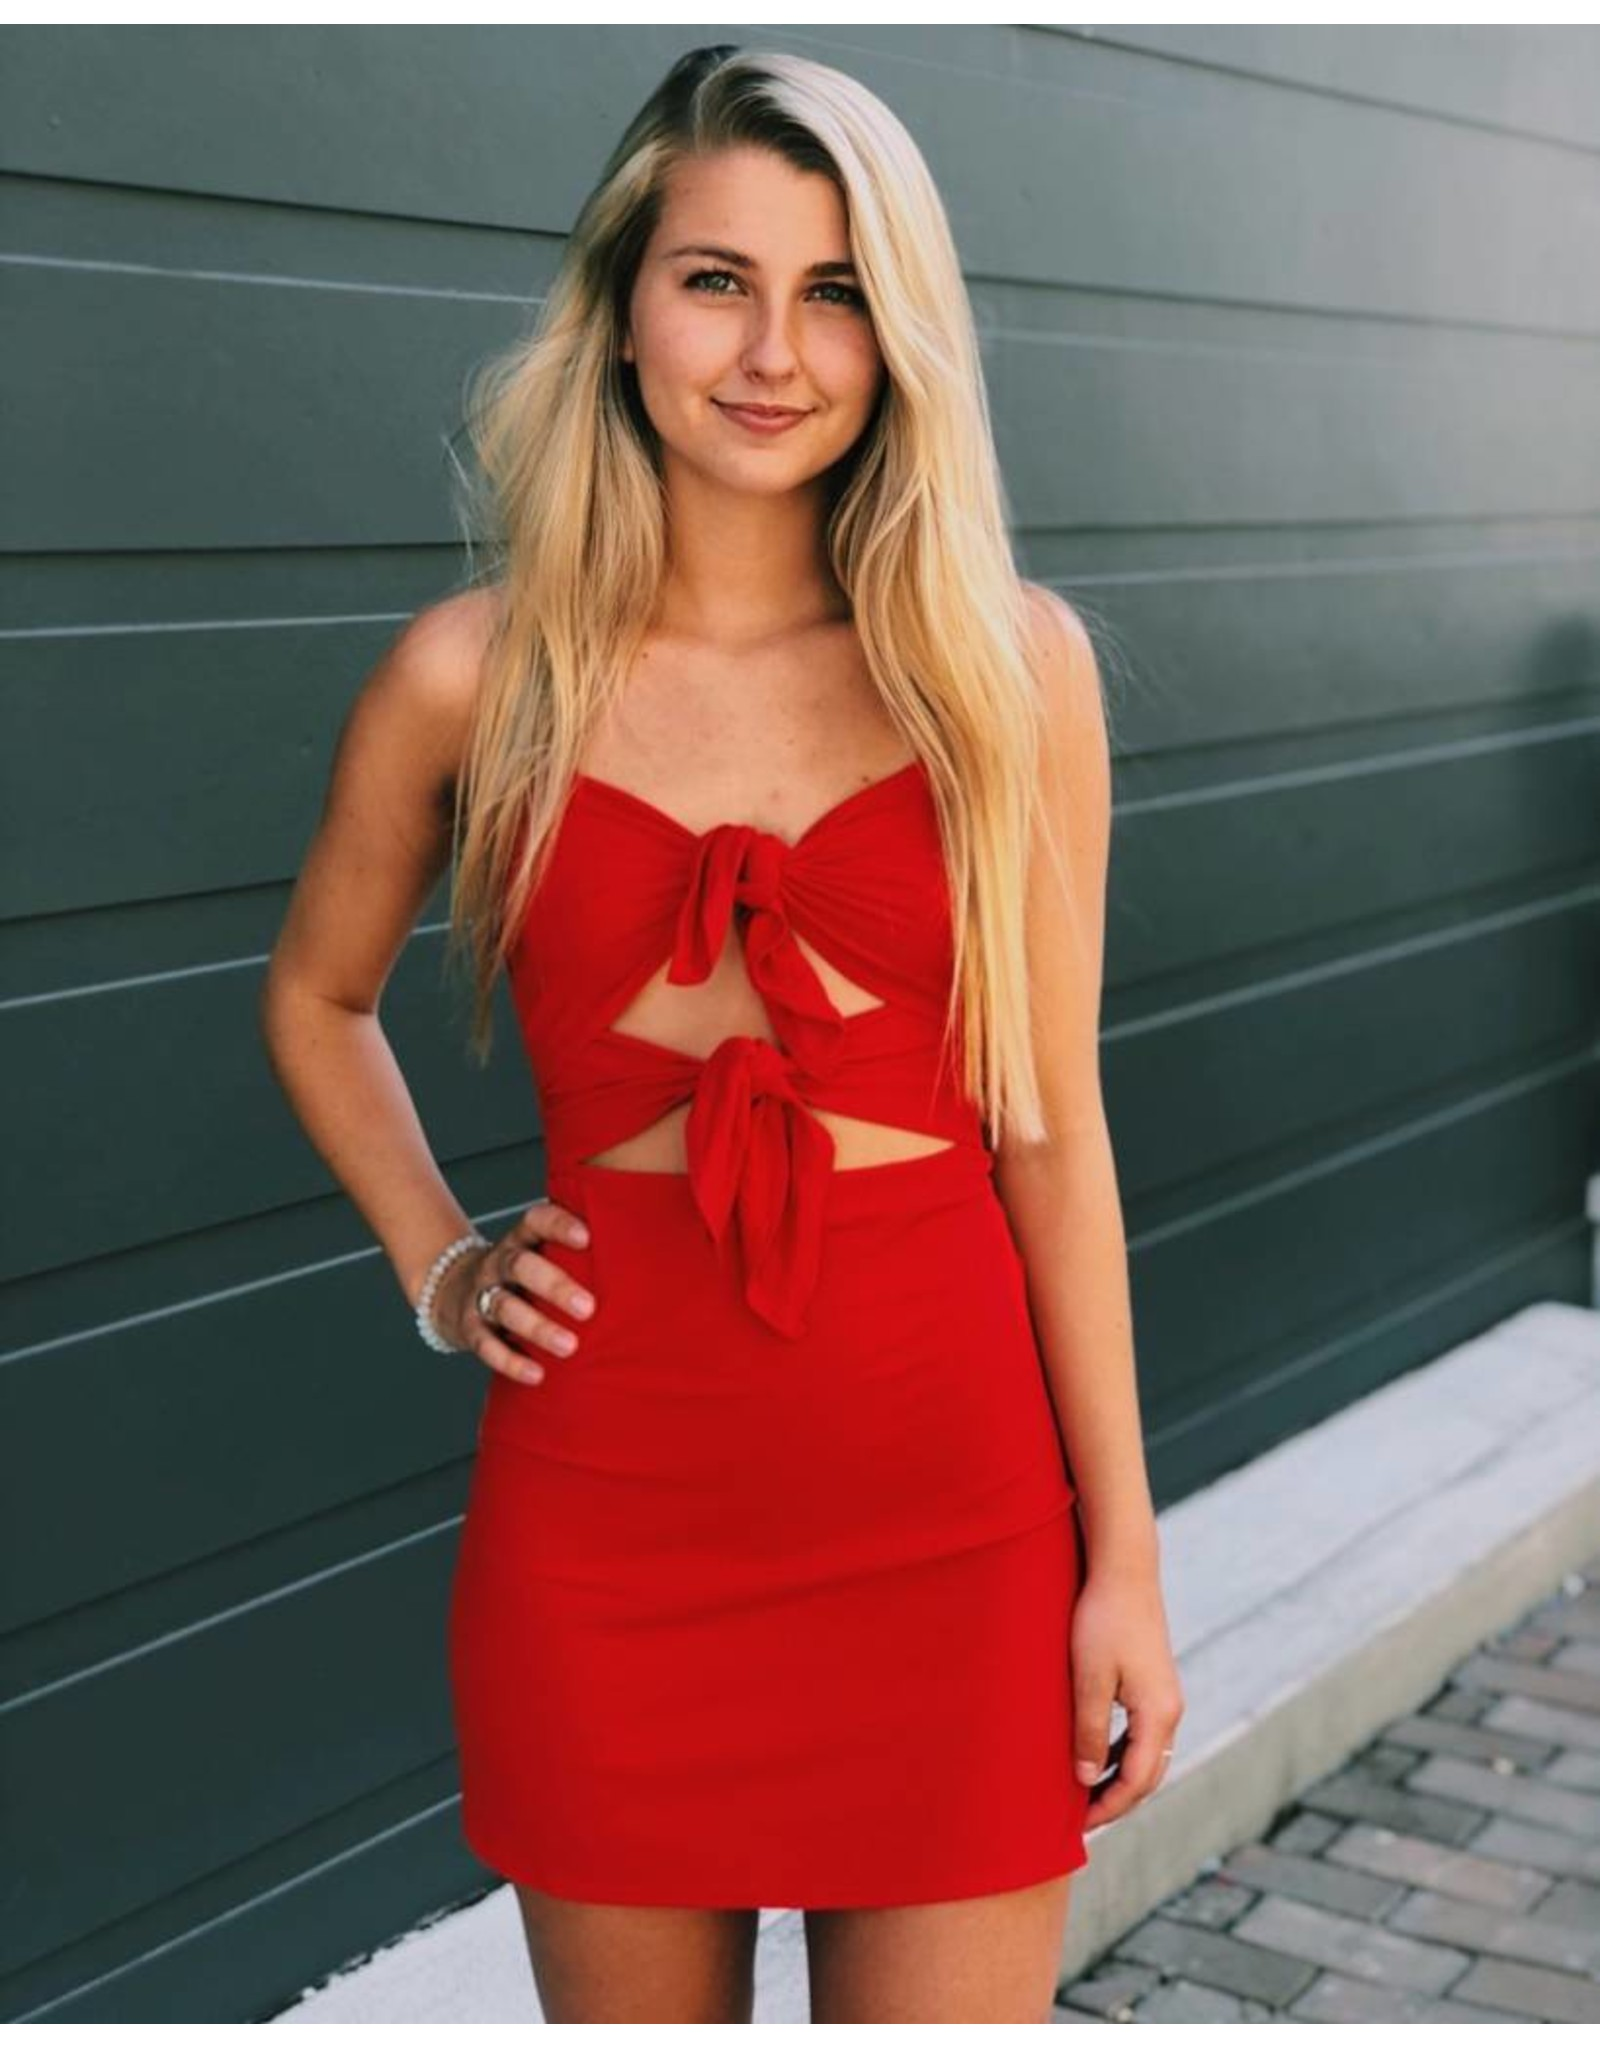 Coming in Hot Dress